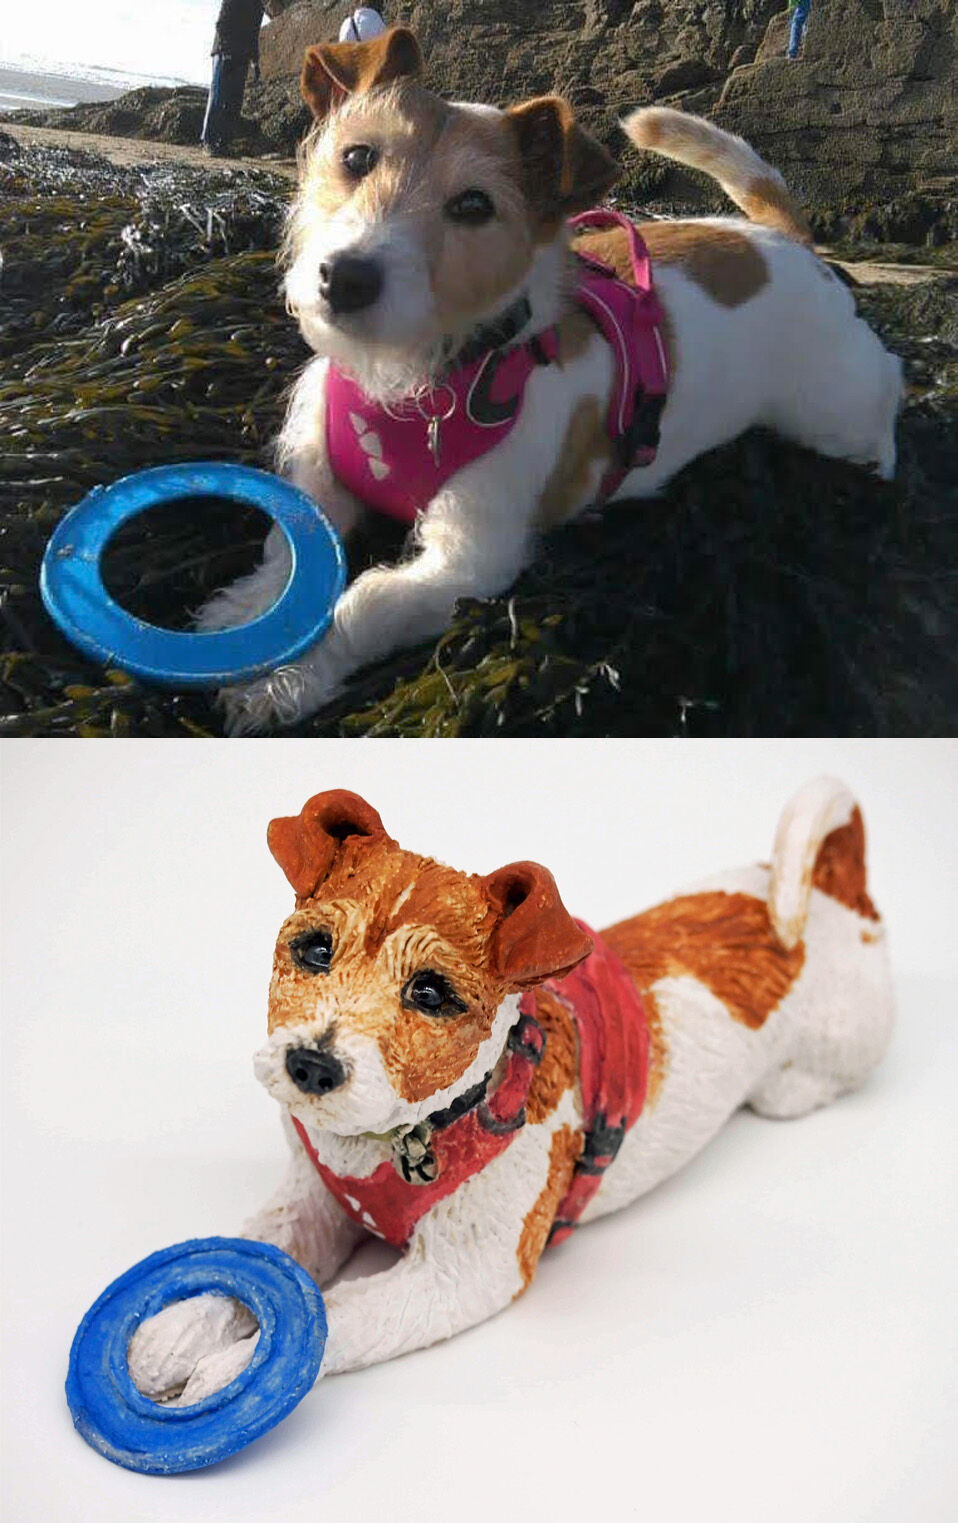 Kernow the Jack Russell Terrier, commission 2020